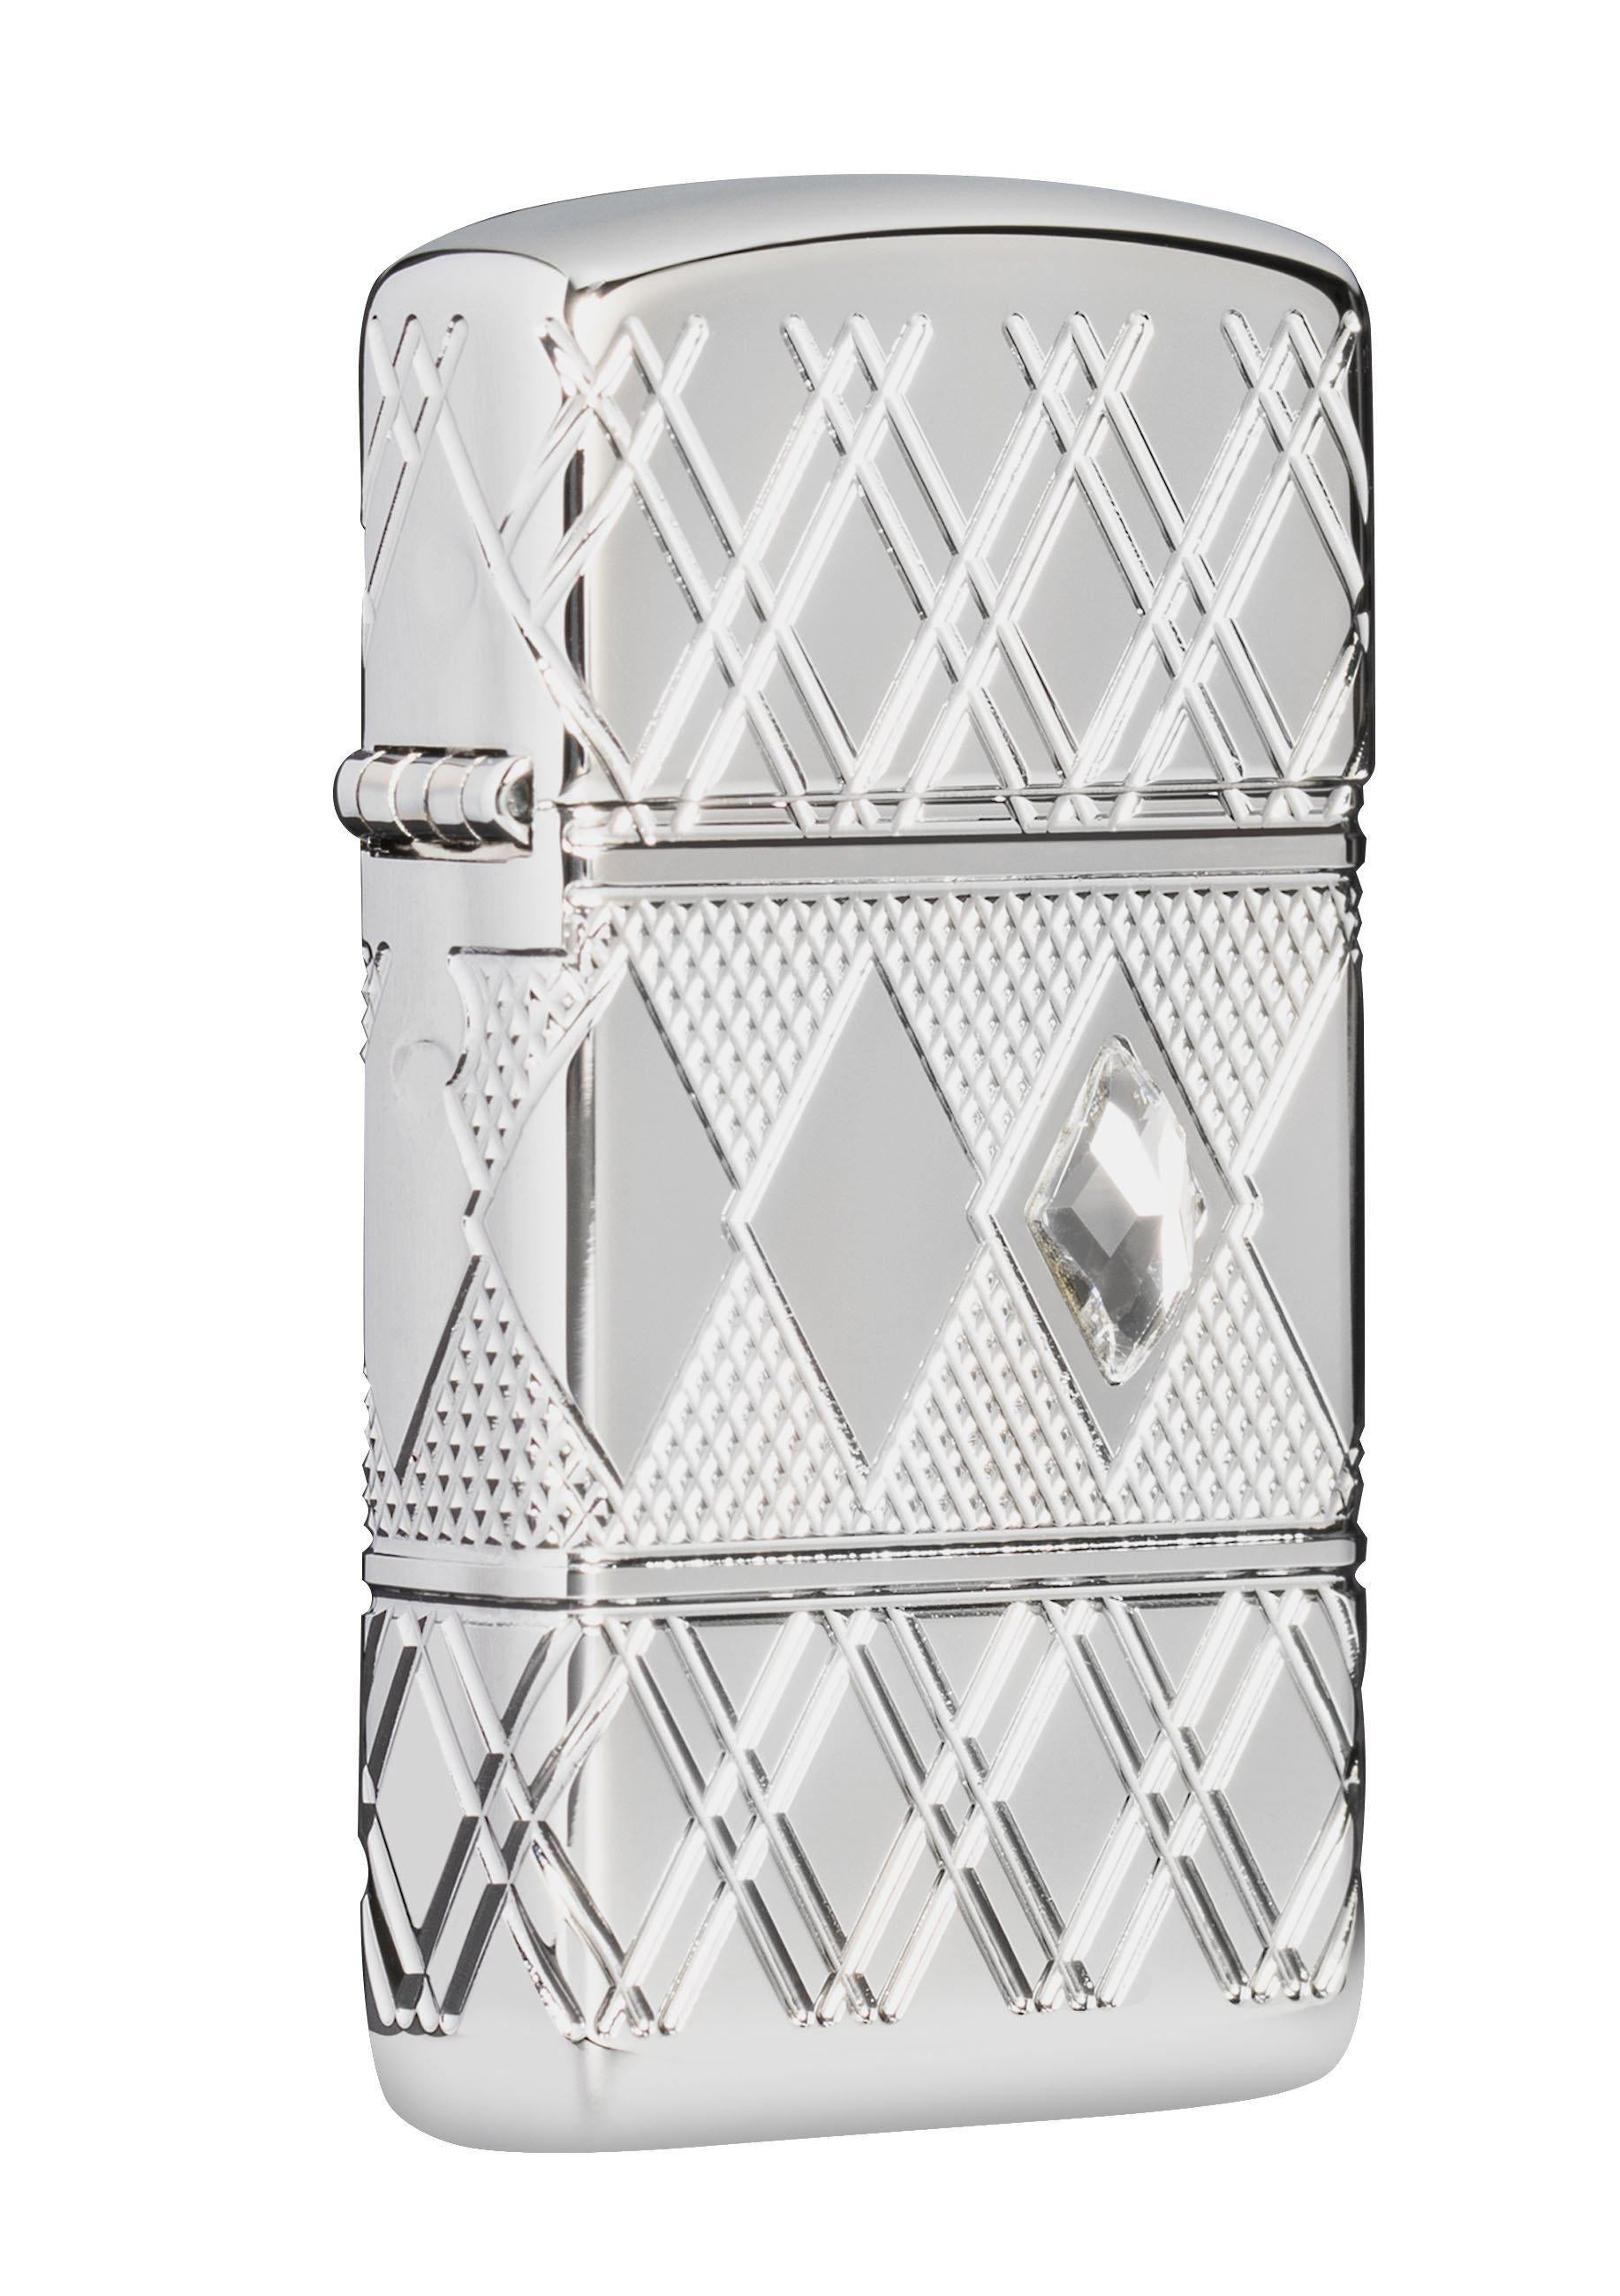 Zippo Lighter: Slim Armor MultiCut Diamond Pattern - High Polish Chrome 49052